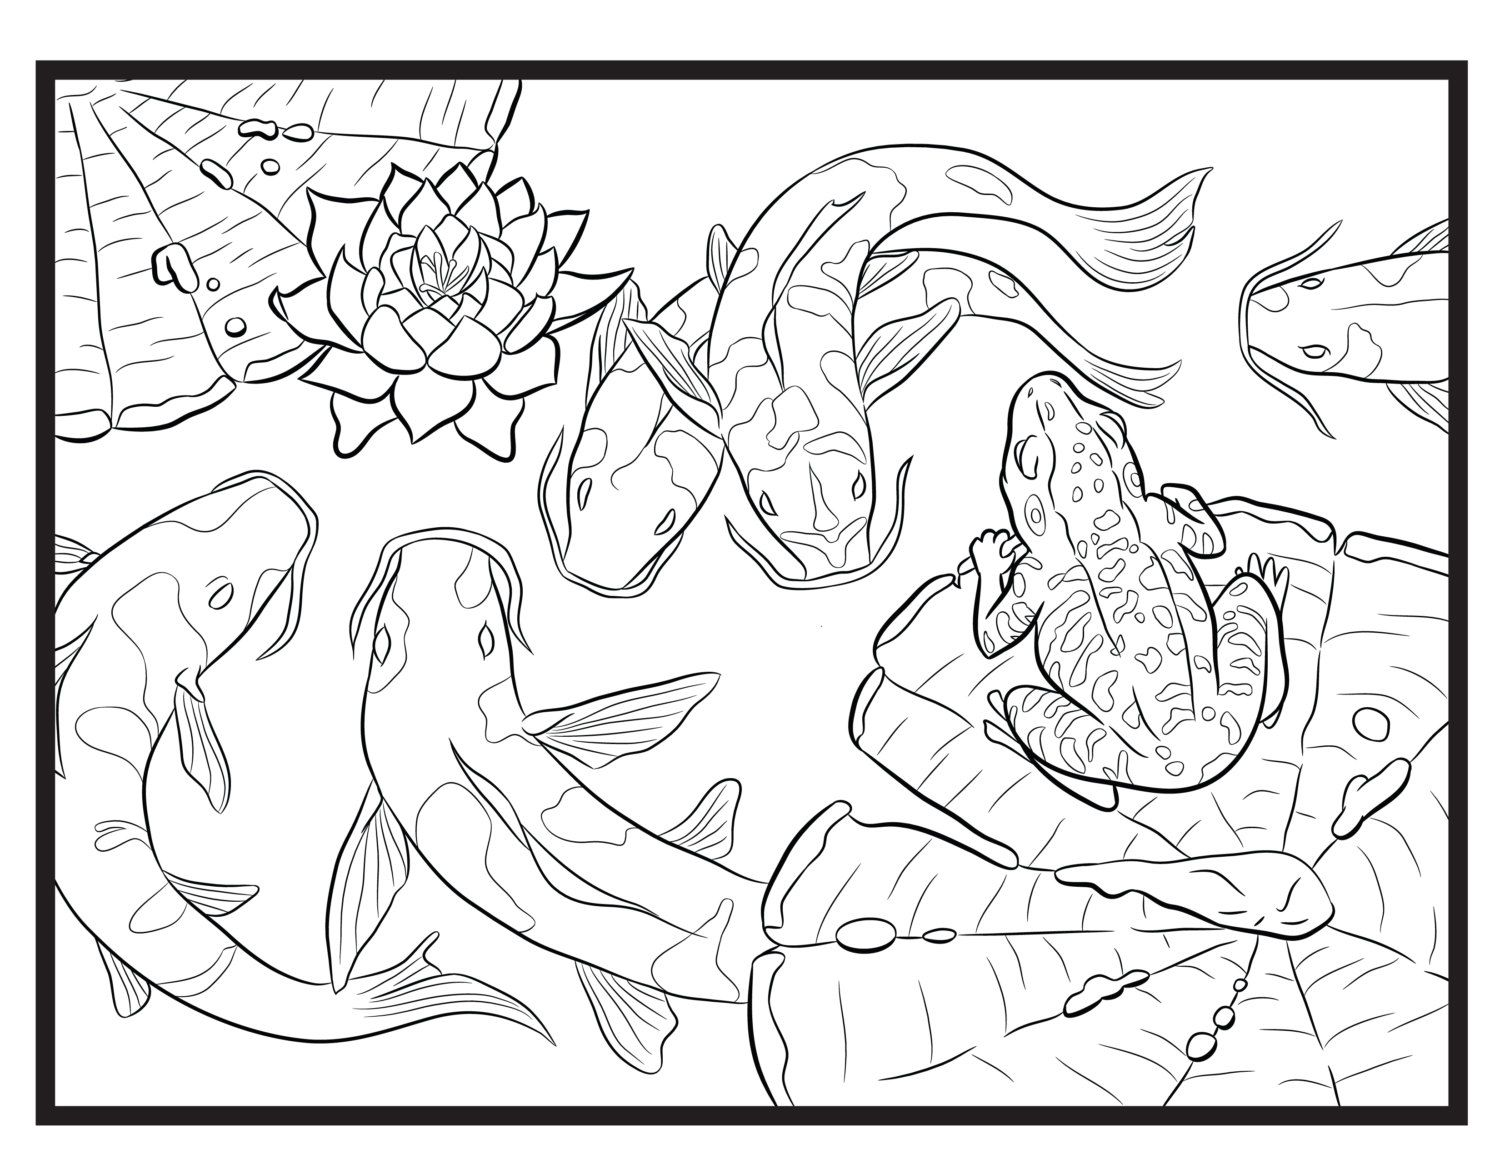 Koi and Frog, Single Coloring Page Coloring pages